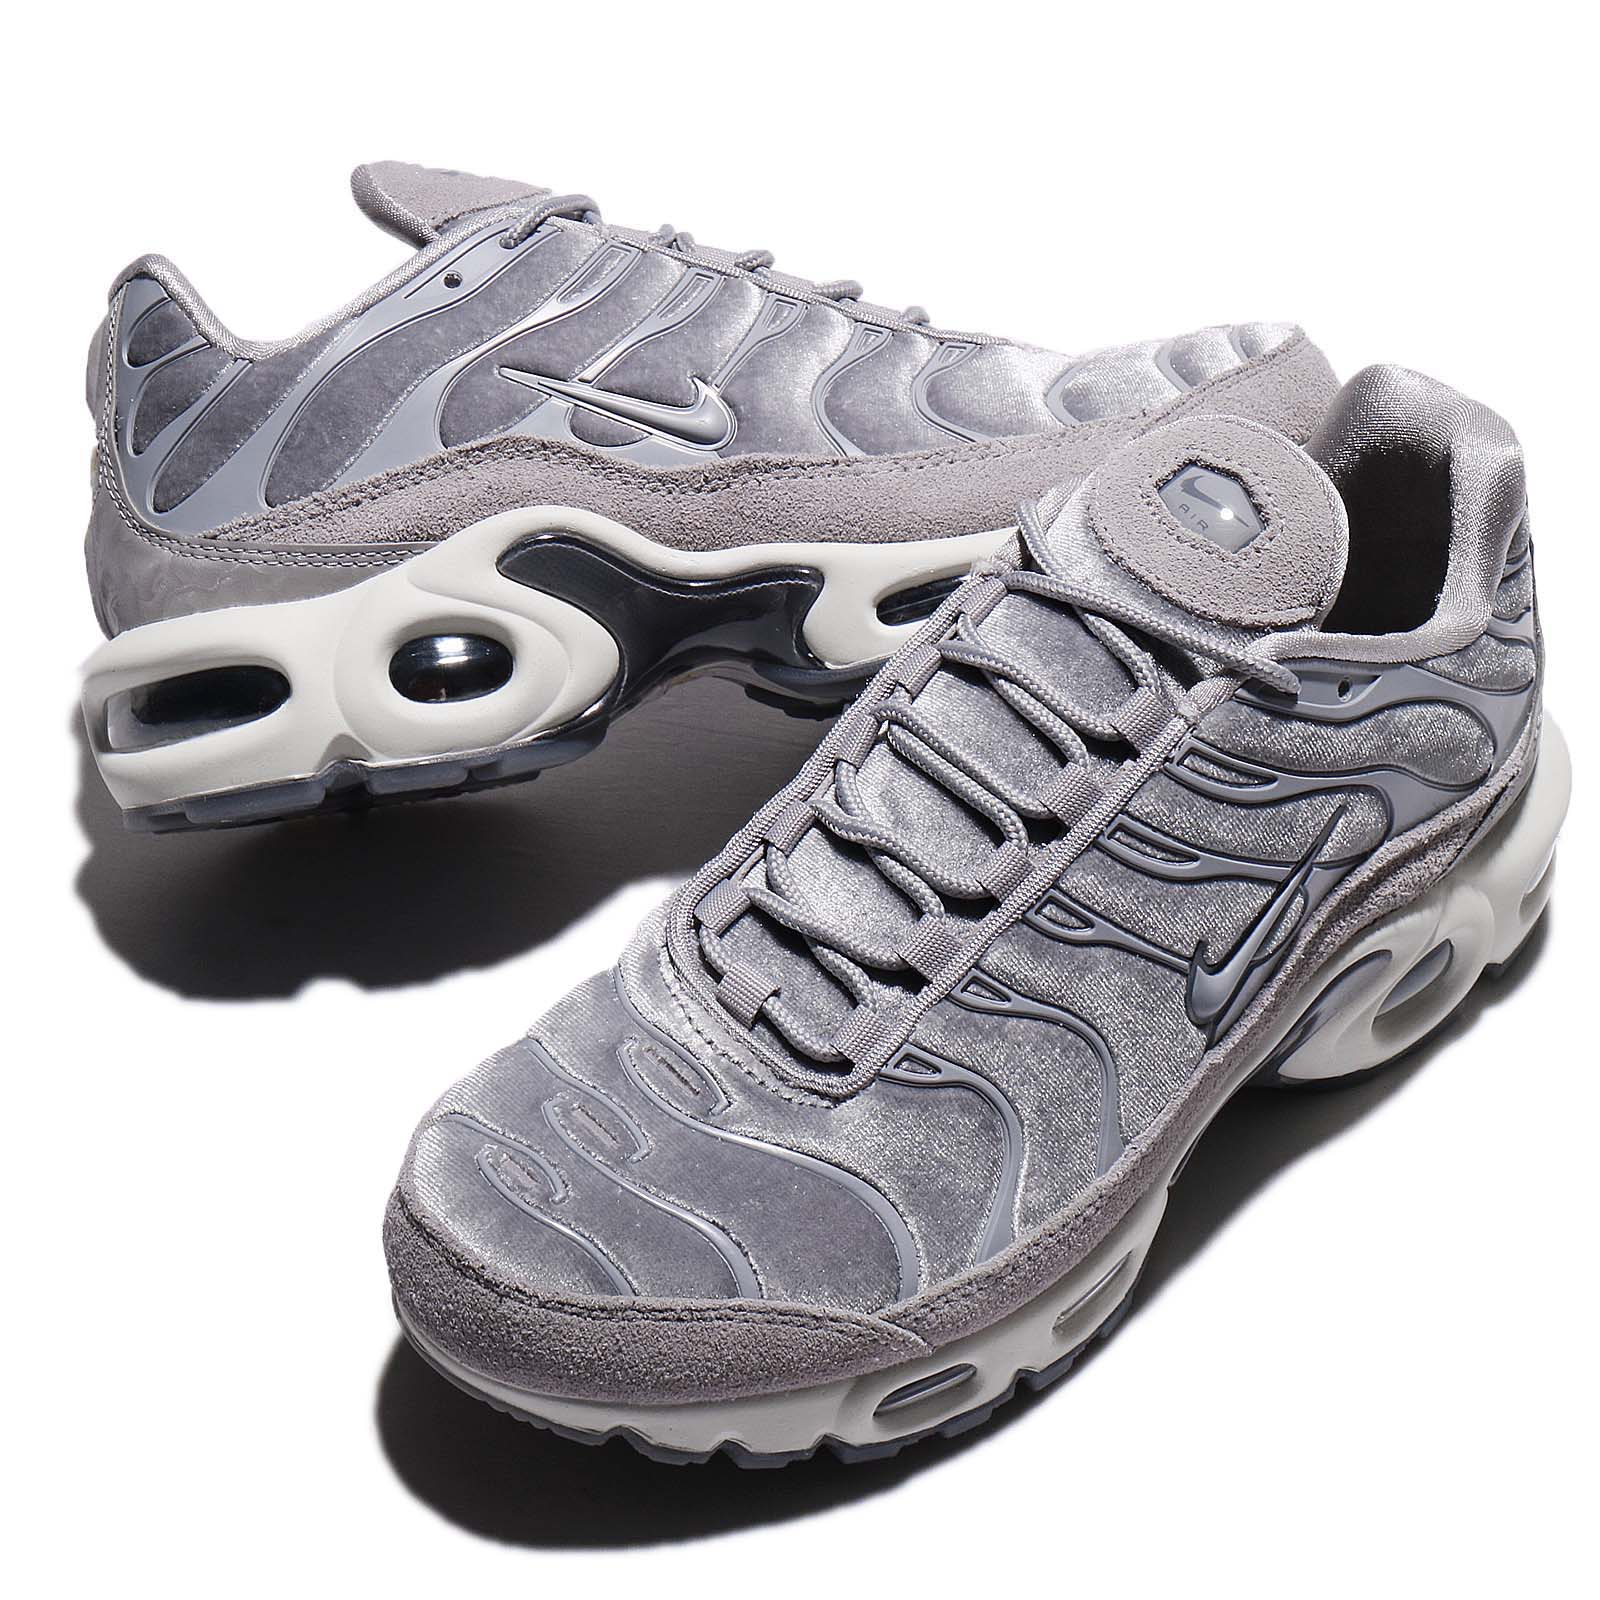 Nike Wmns Air Max Plus LX Lux Gunsmoke Grey Women Running Shoes ... 6fbfc86fd